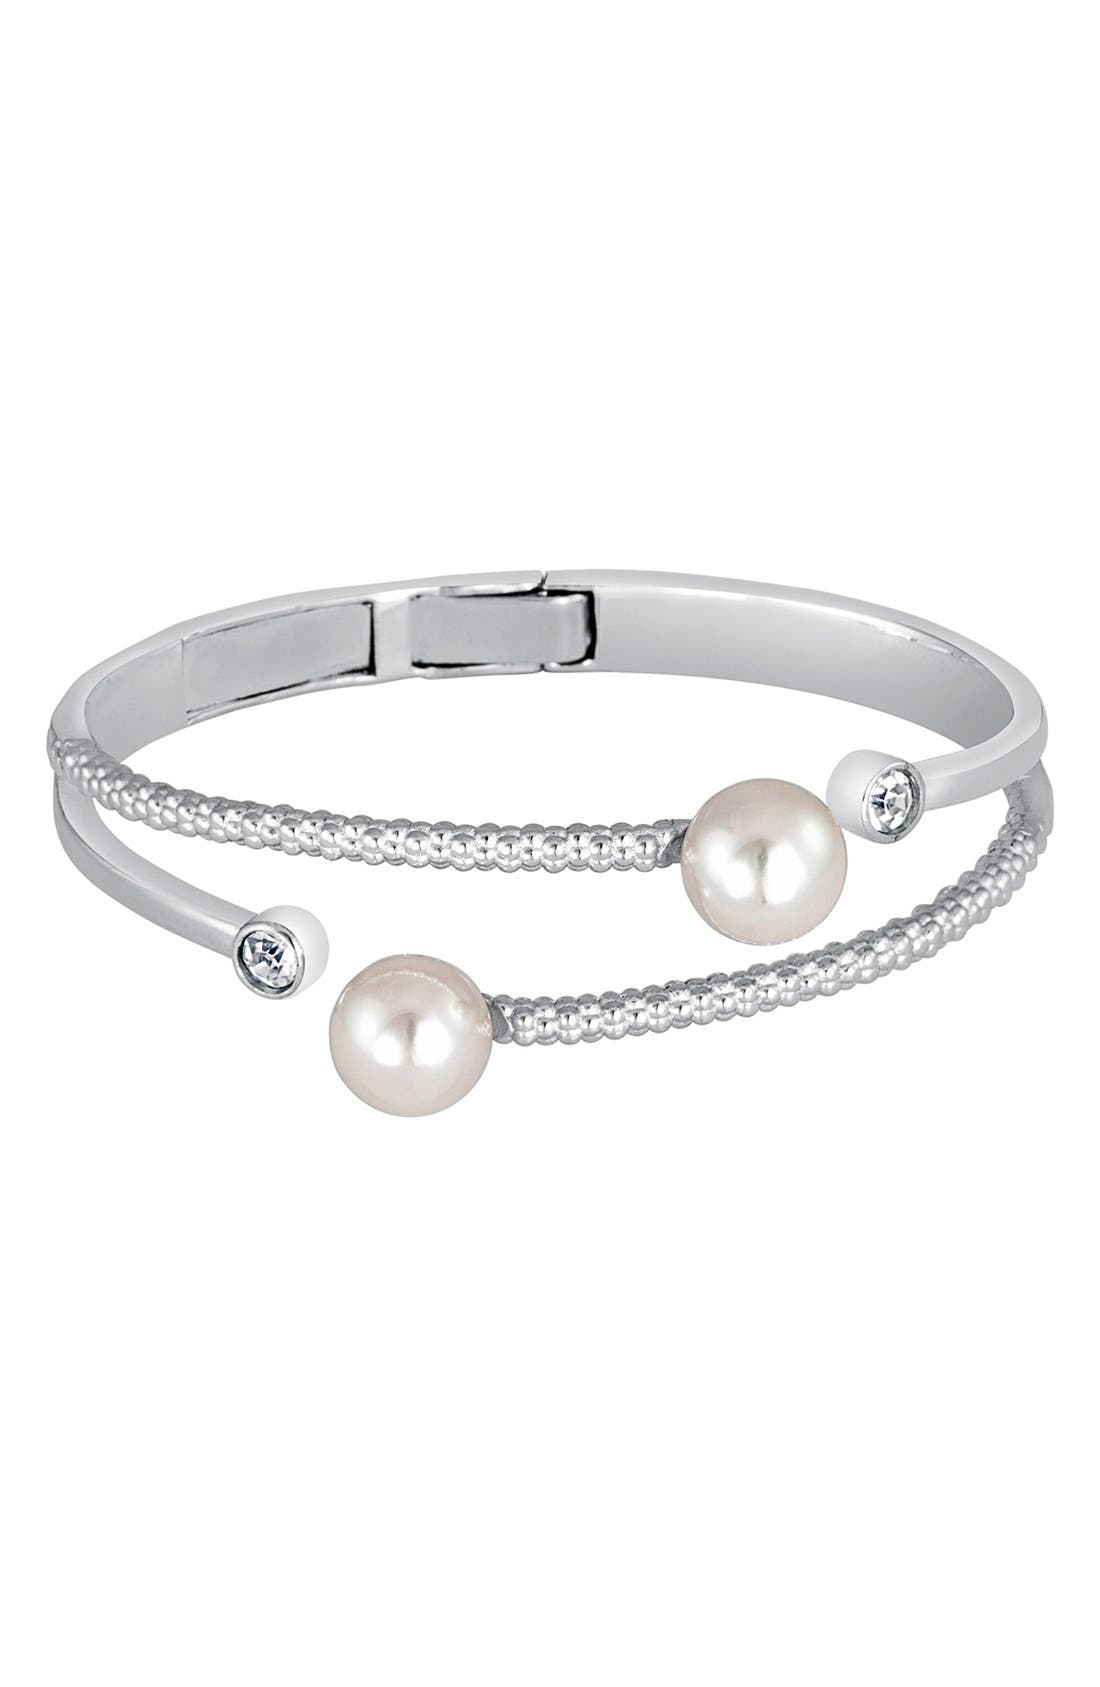 10mm Simulated Round Pearl Cuff,                             Main thumbnail 1, color,                             WHITE